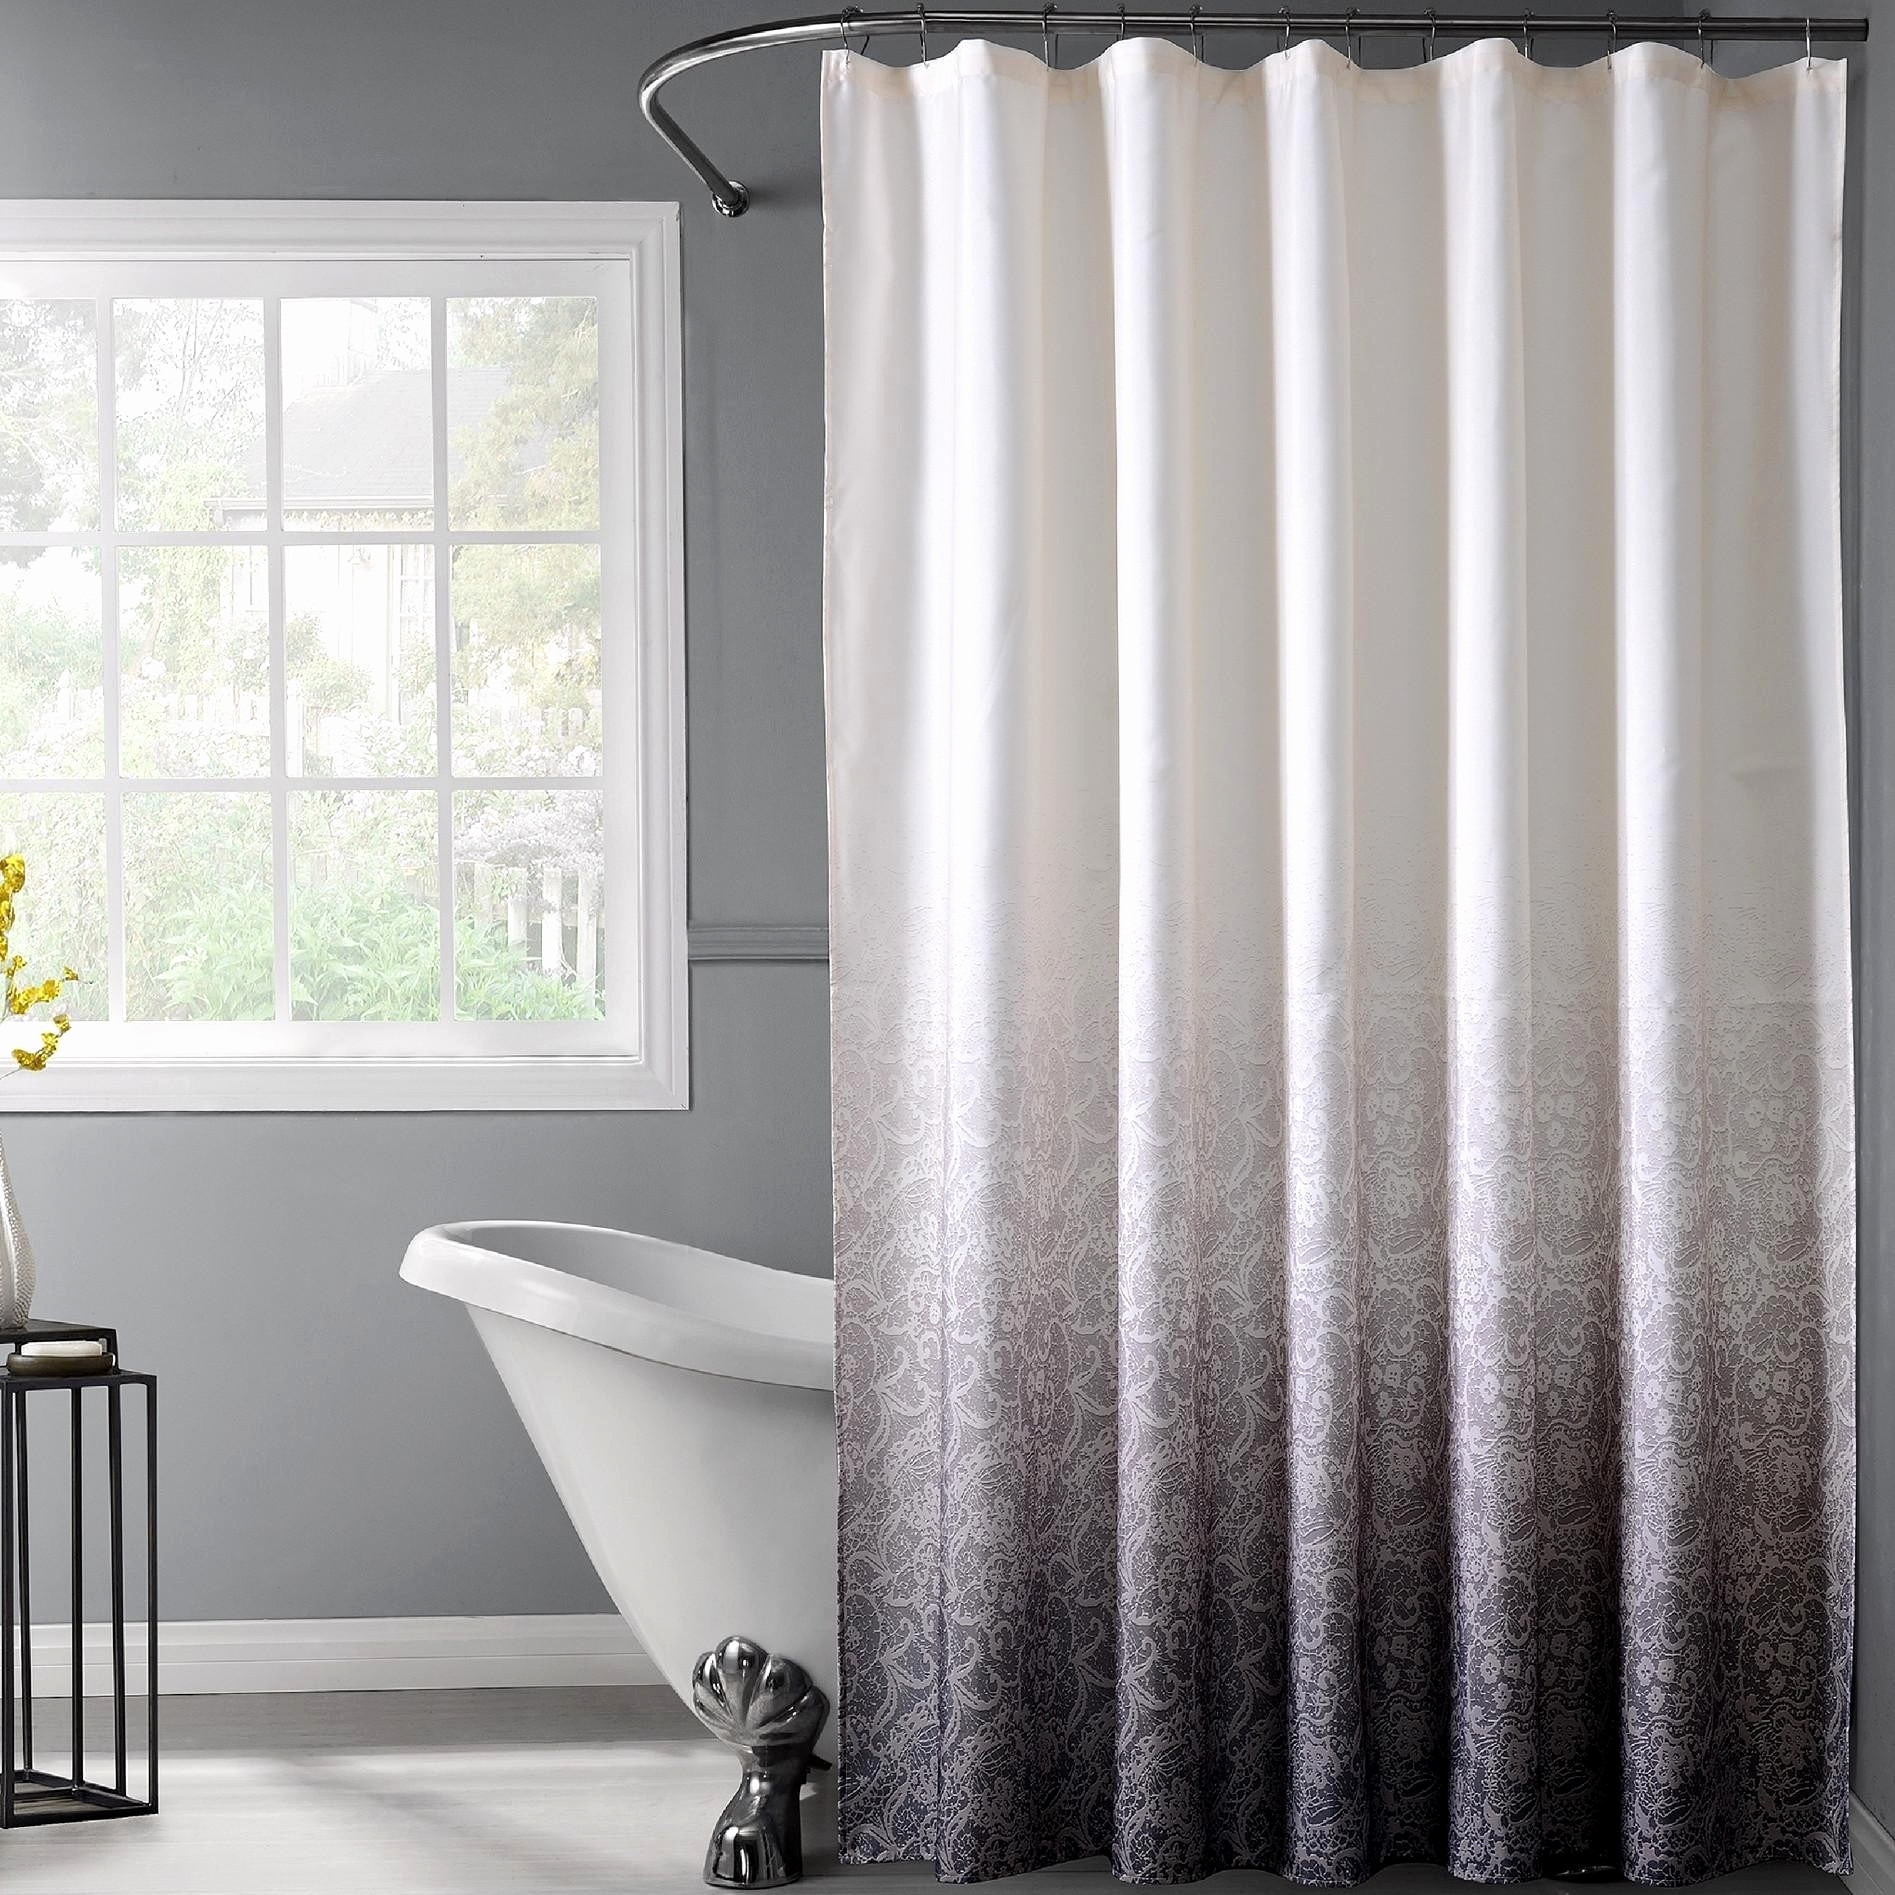 32 Lovely Shower Curtain Wall Art Design Ideas Of Art Shower Curtain Pertaining To Most Recent Shower Curtain Wall Art (View 1 of 20)